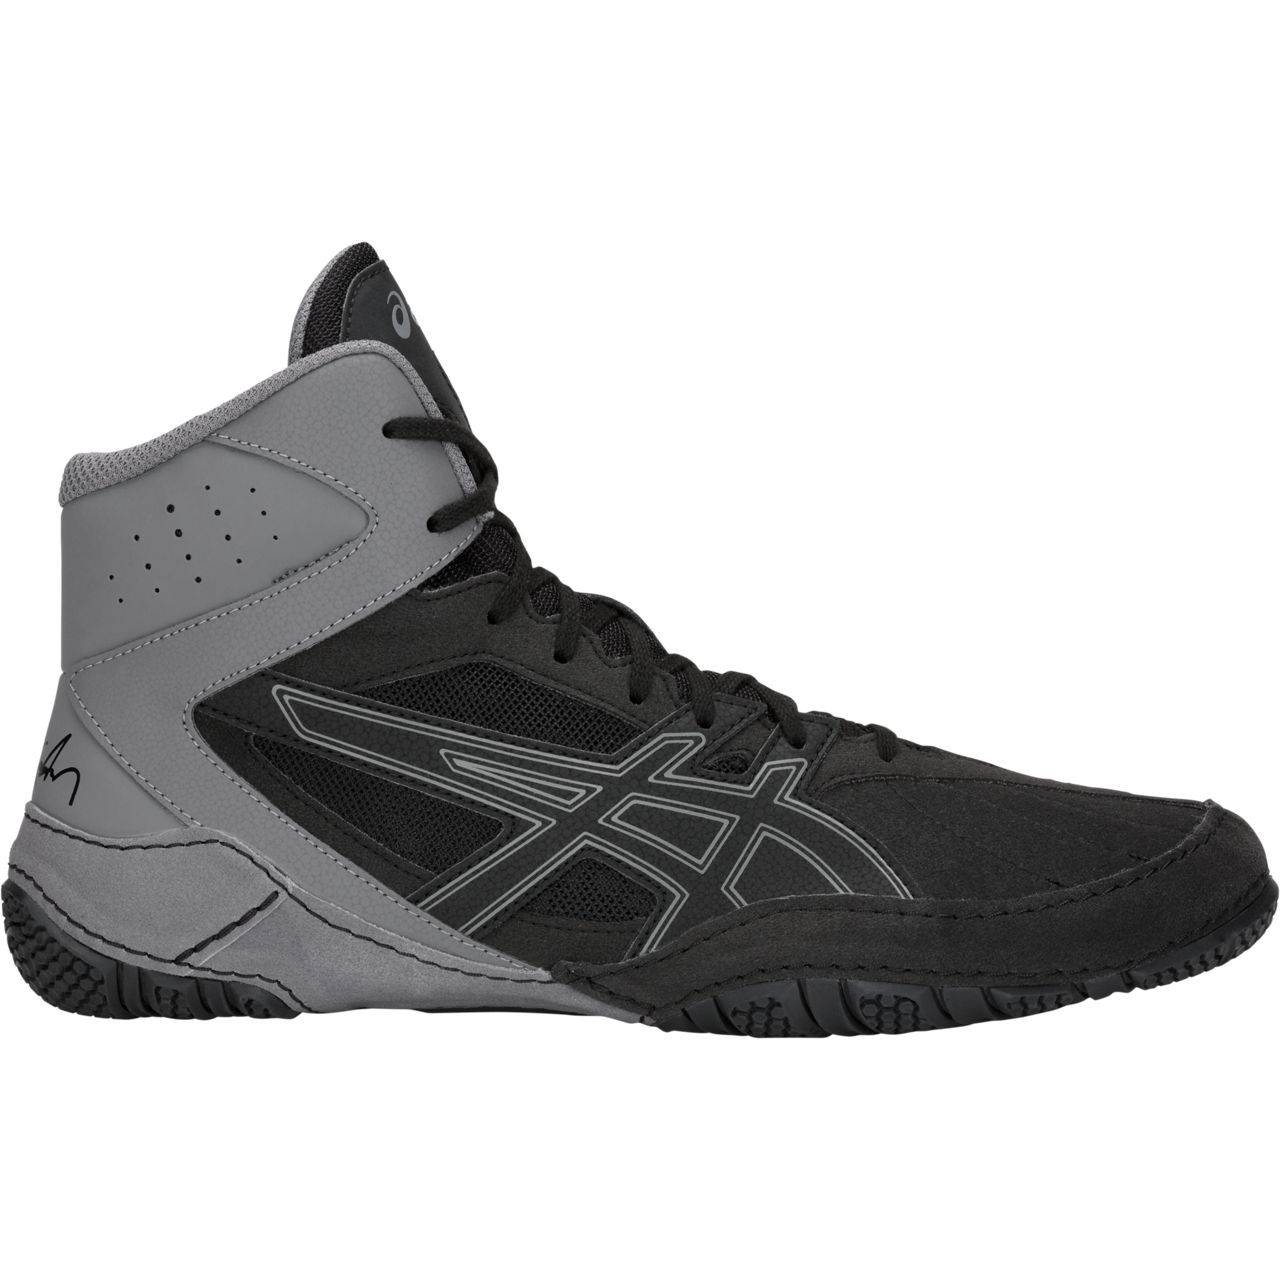 Cael® 0 V8 New 001 1081a002 Asics® Color Shoes X0nxqsnw4c Wrestling IY2HEeD9bW